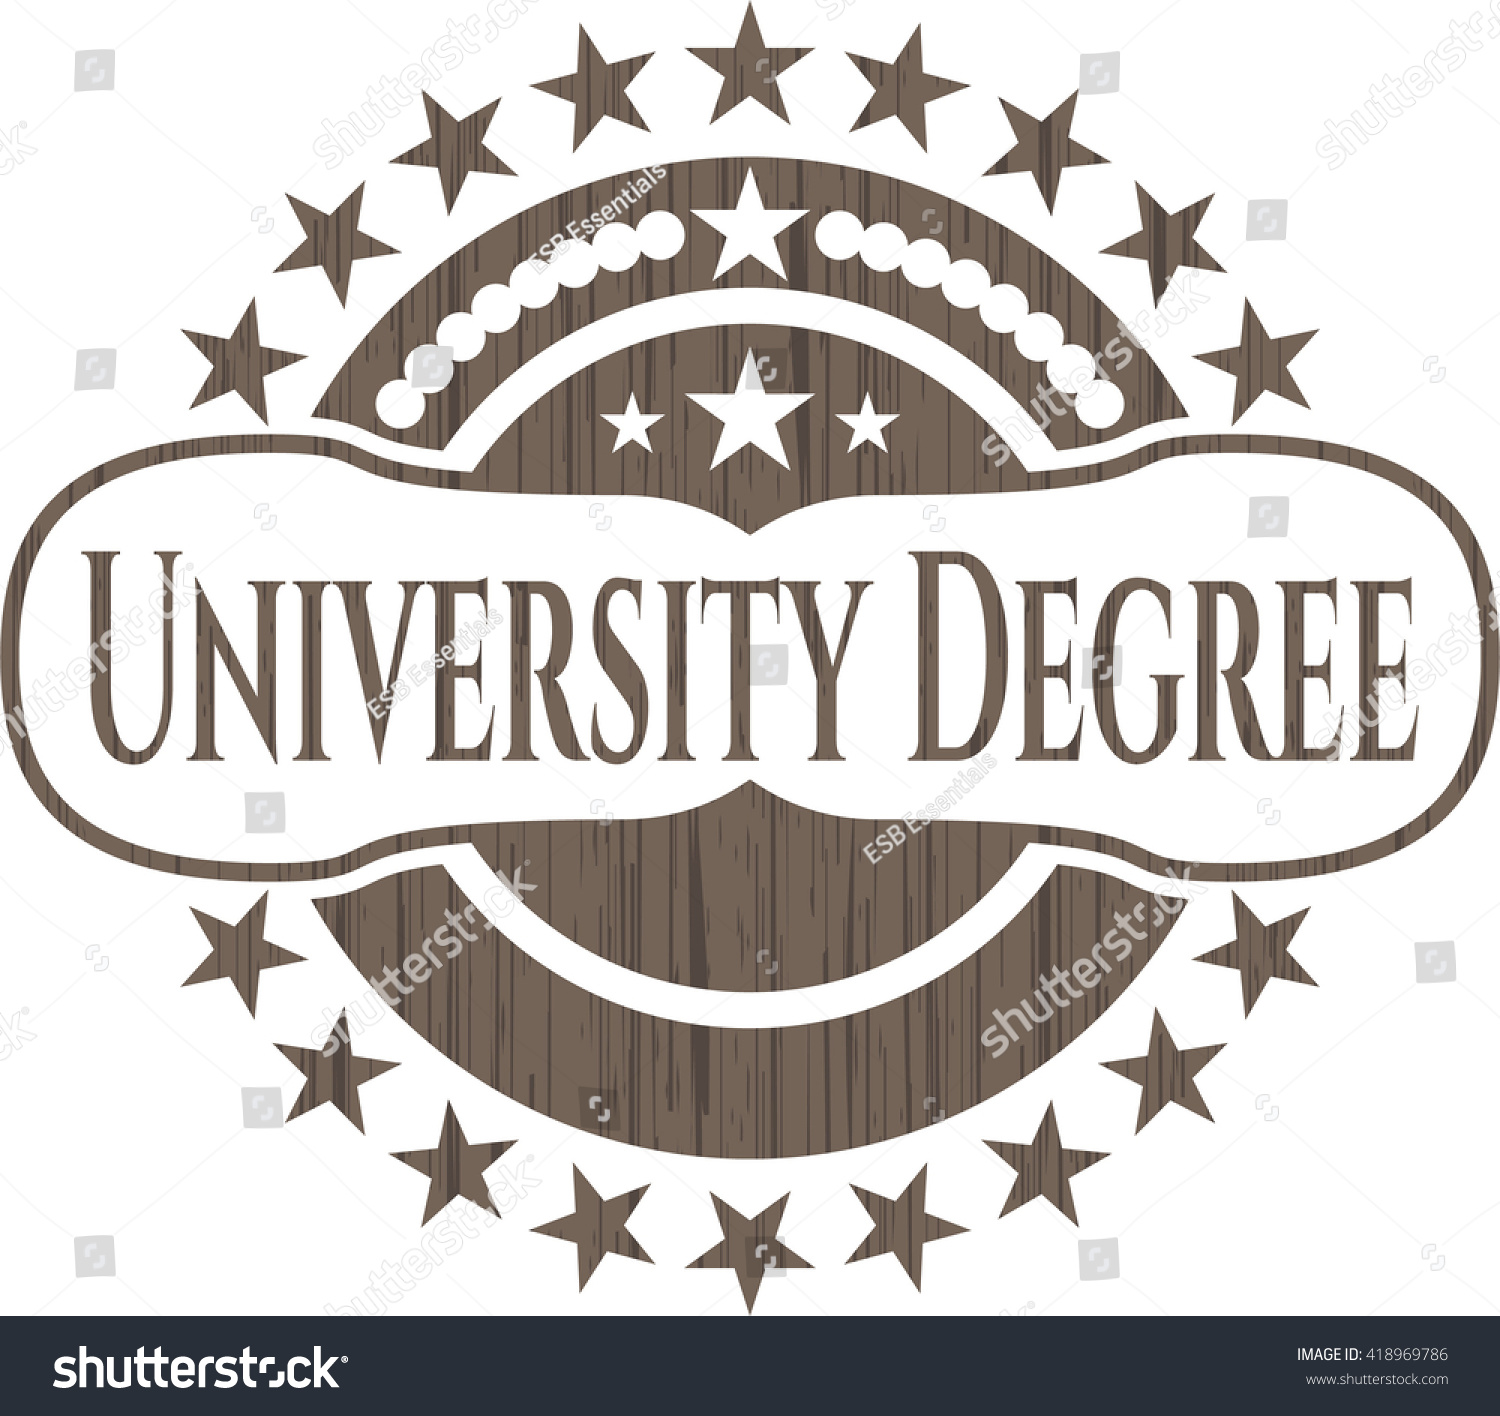 Illustration easiest degree in college